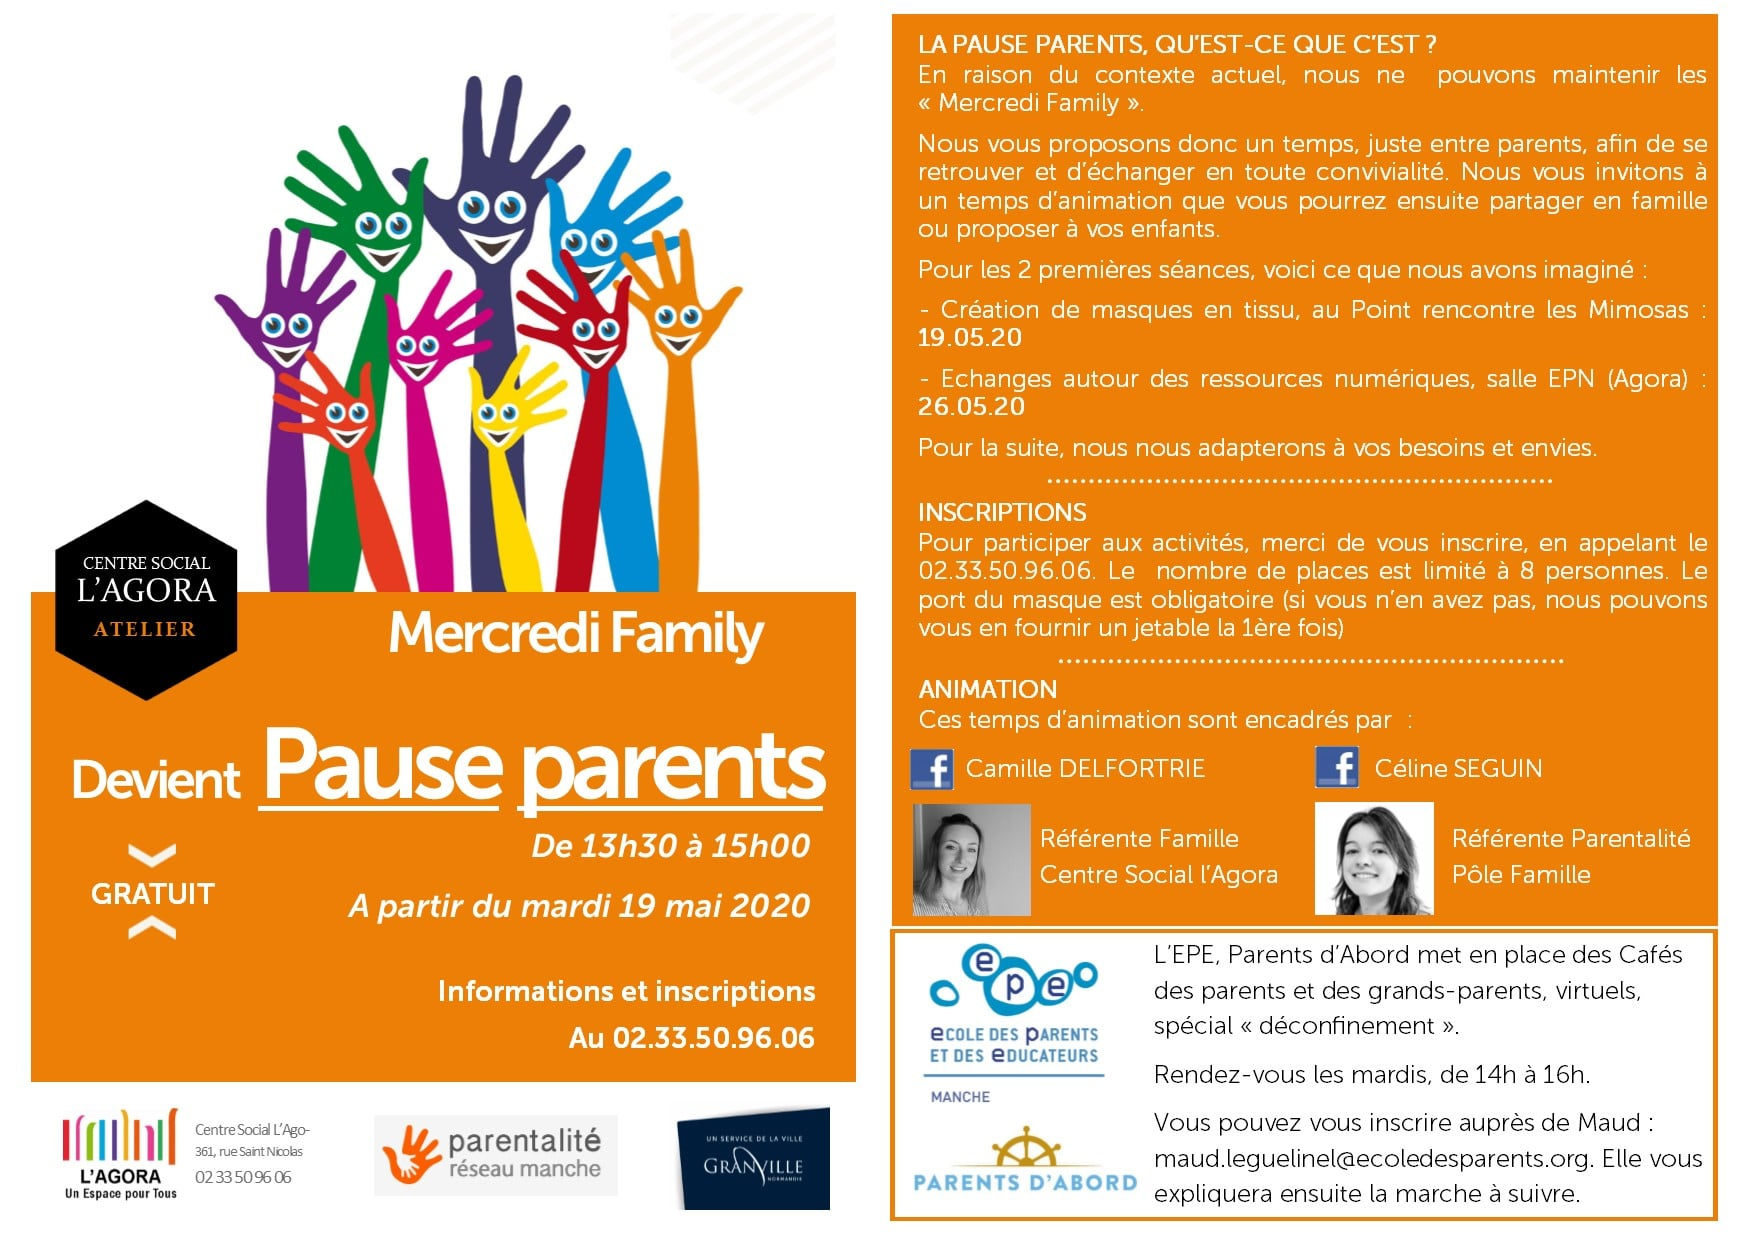 Le Mercredi Family devient Pause Parents.